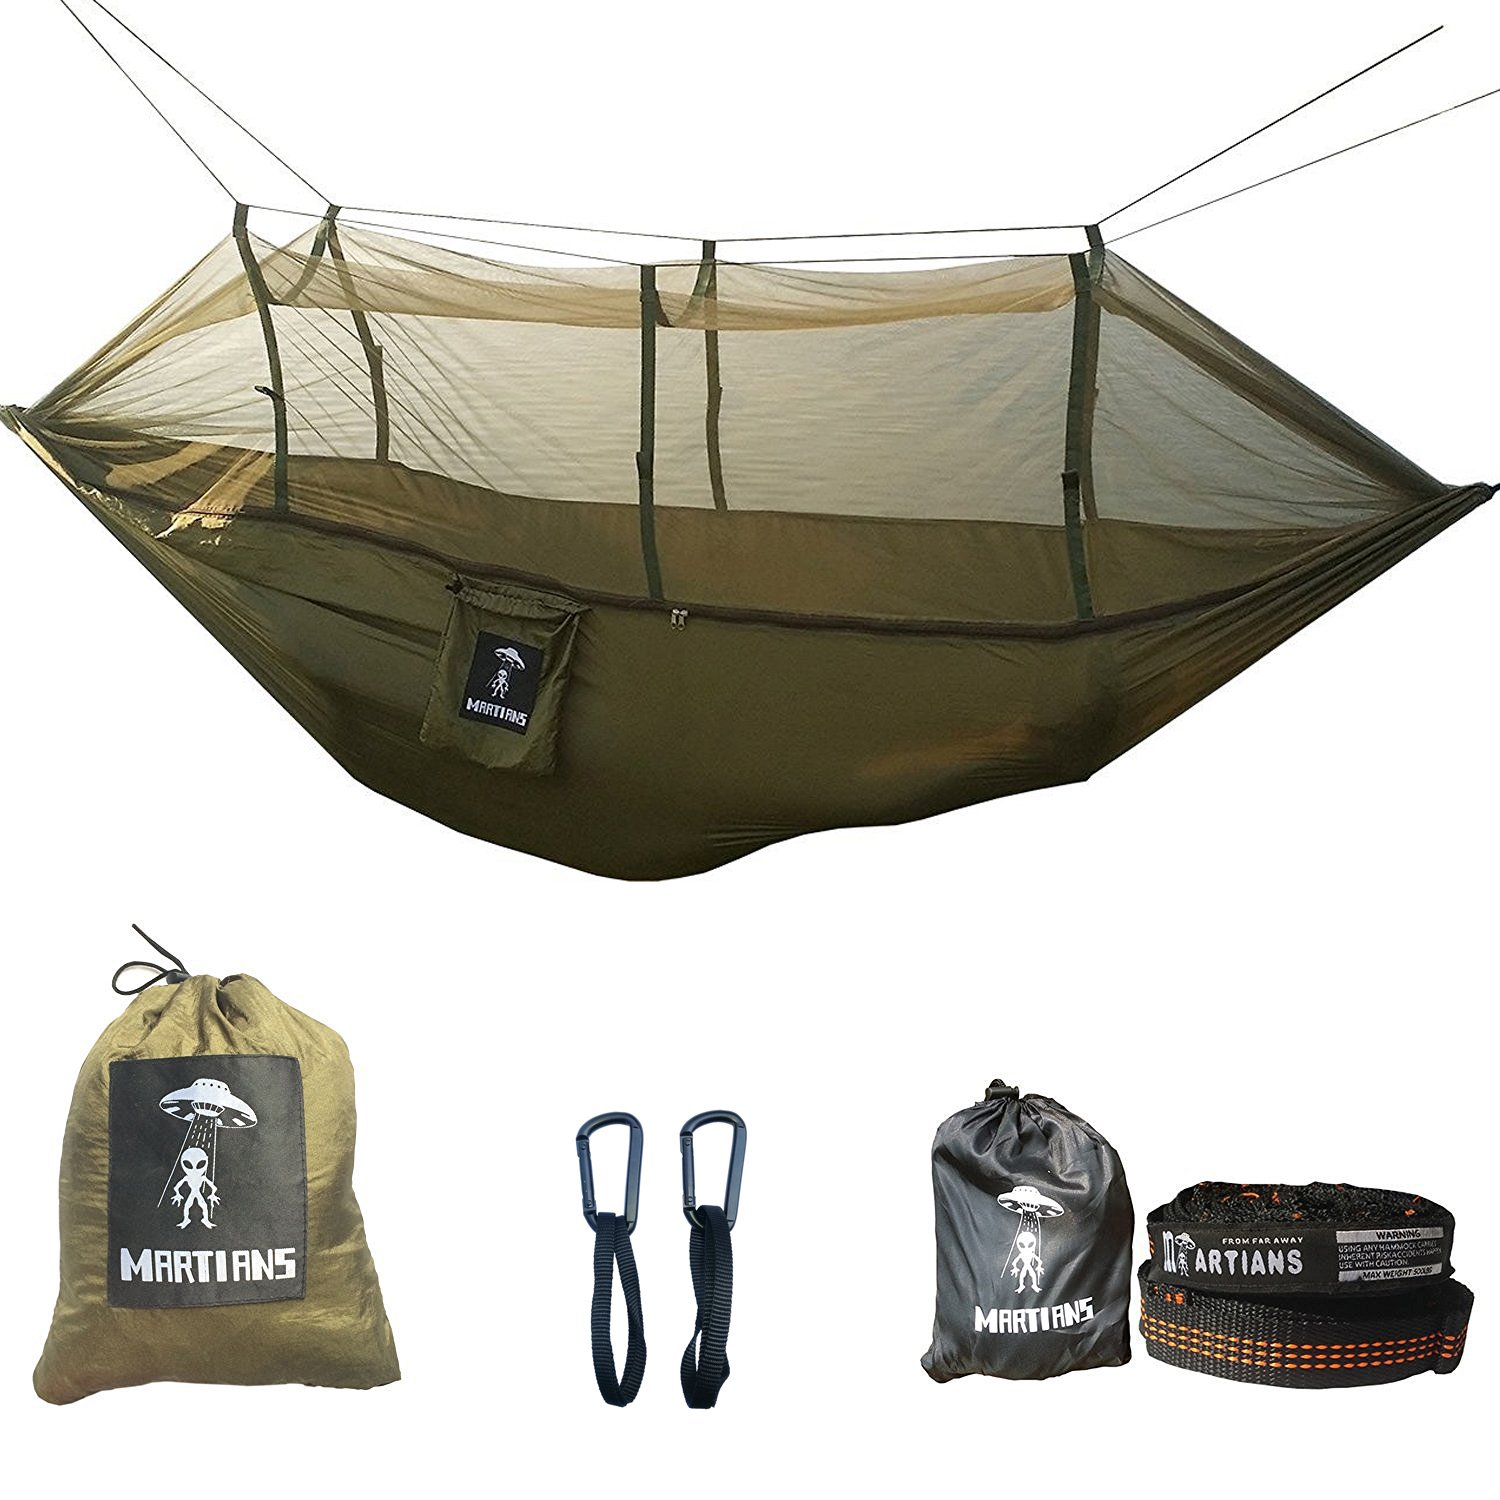 Lightweight Parachute Backpacking Yard Easy Setup Supports Image 1